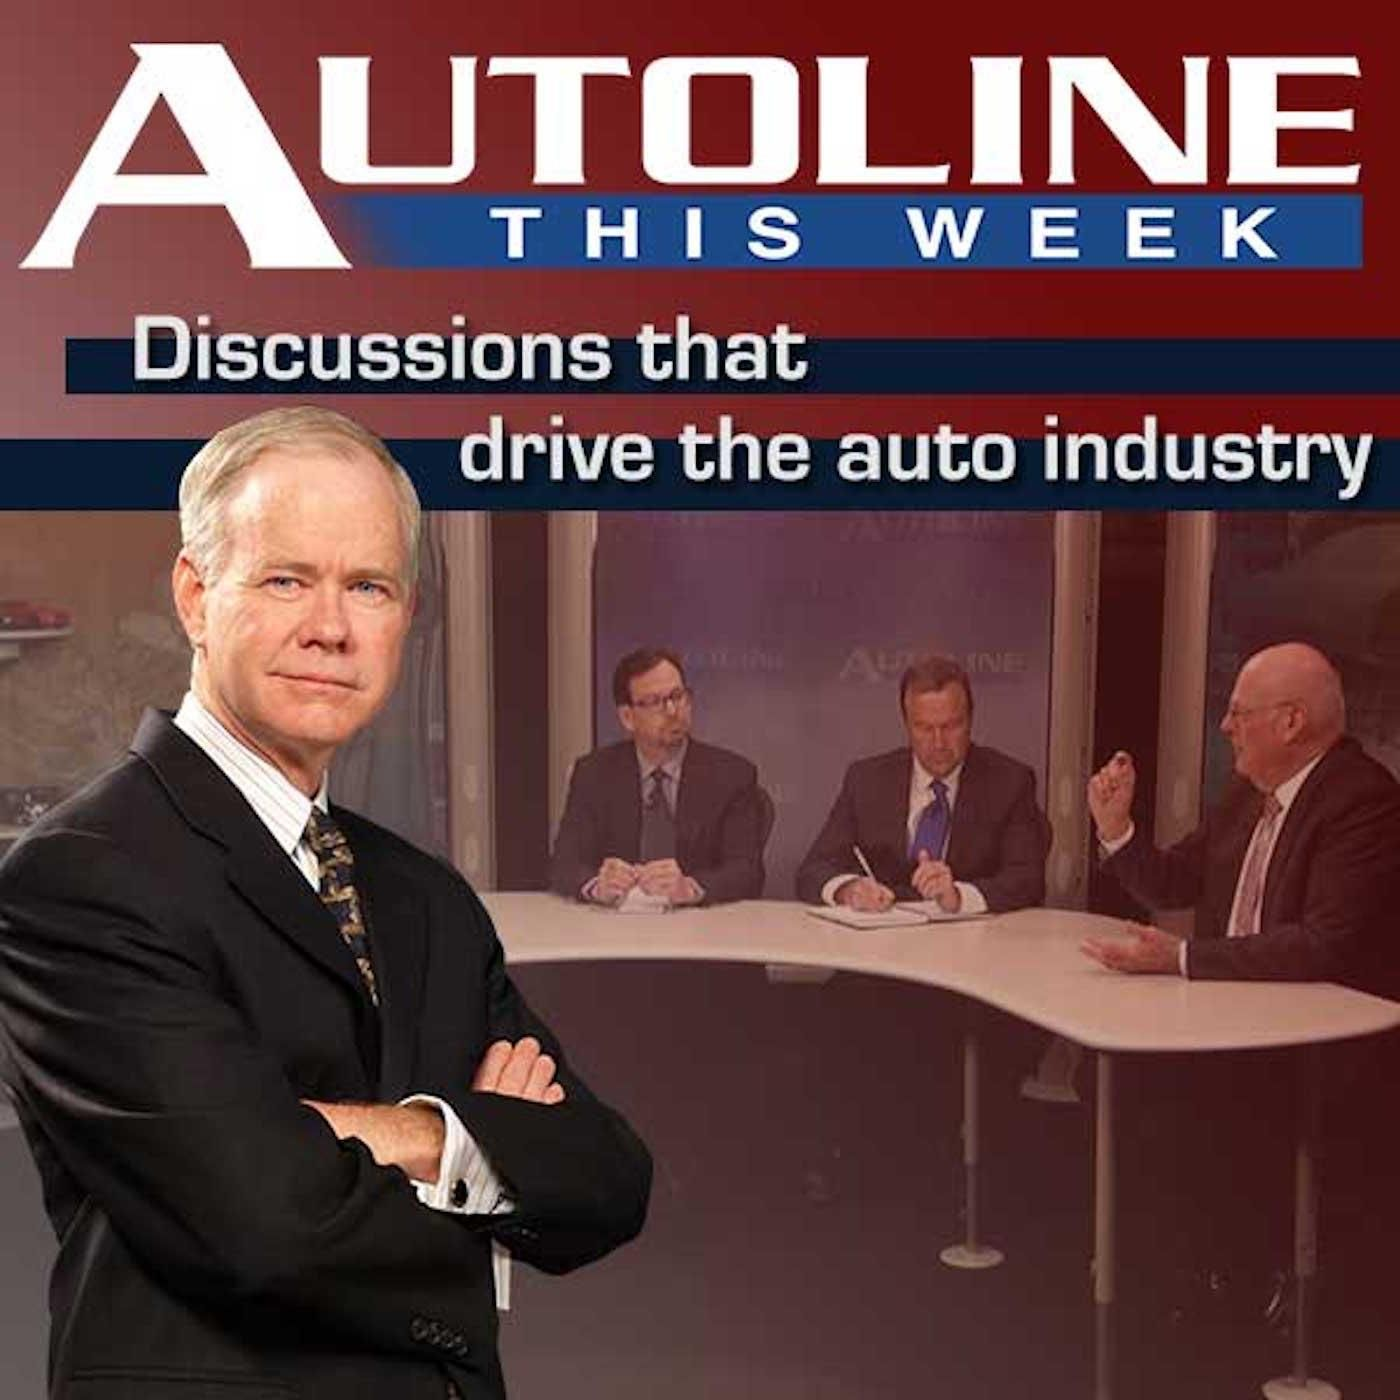 Autoline This Week - Audio